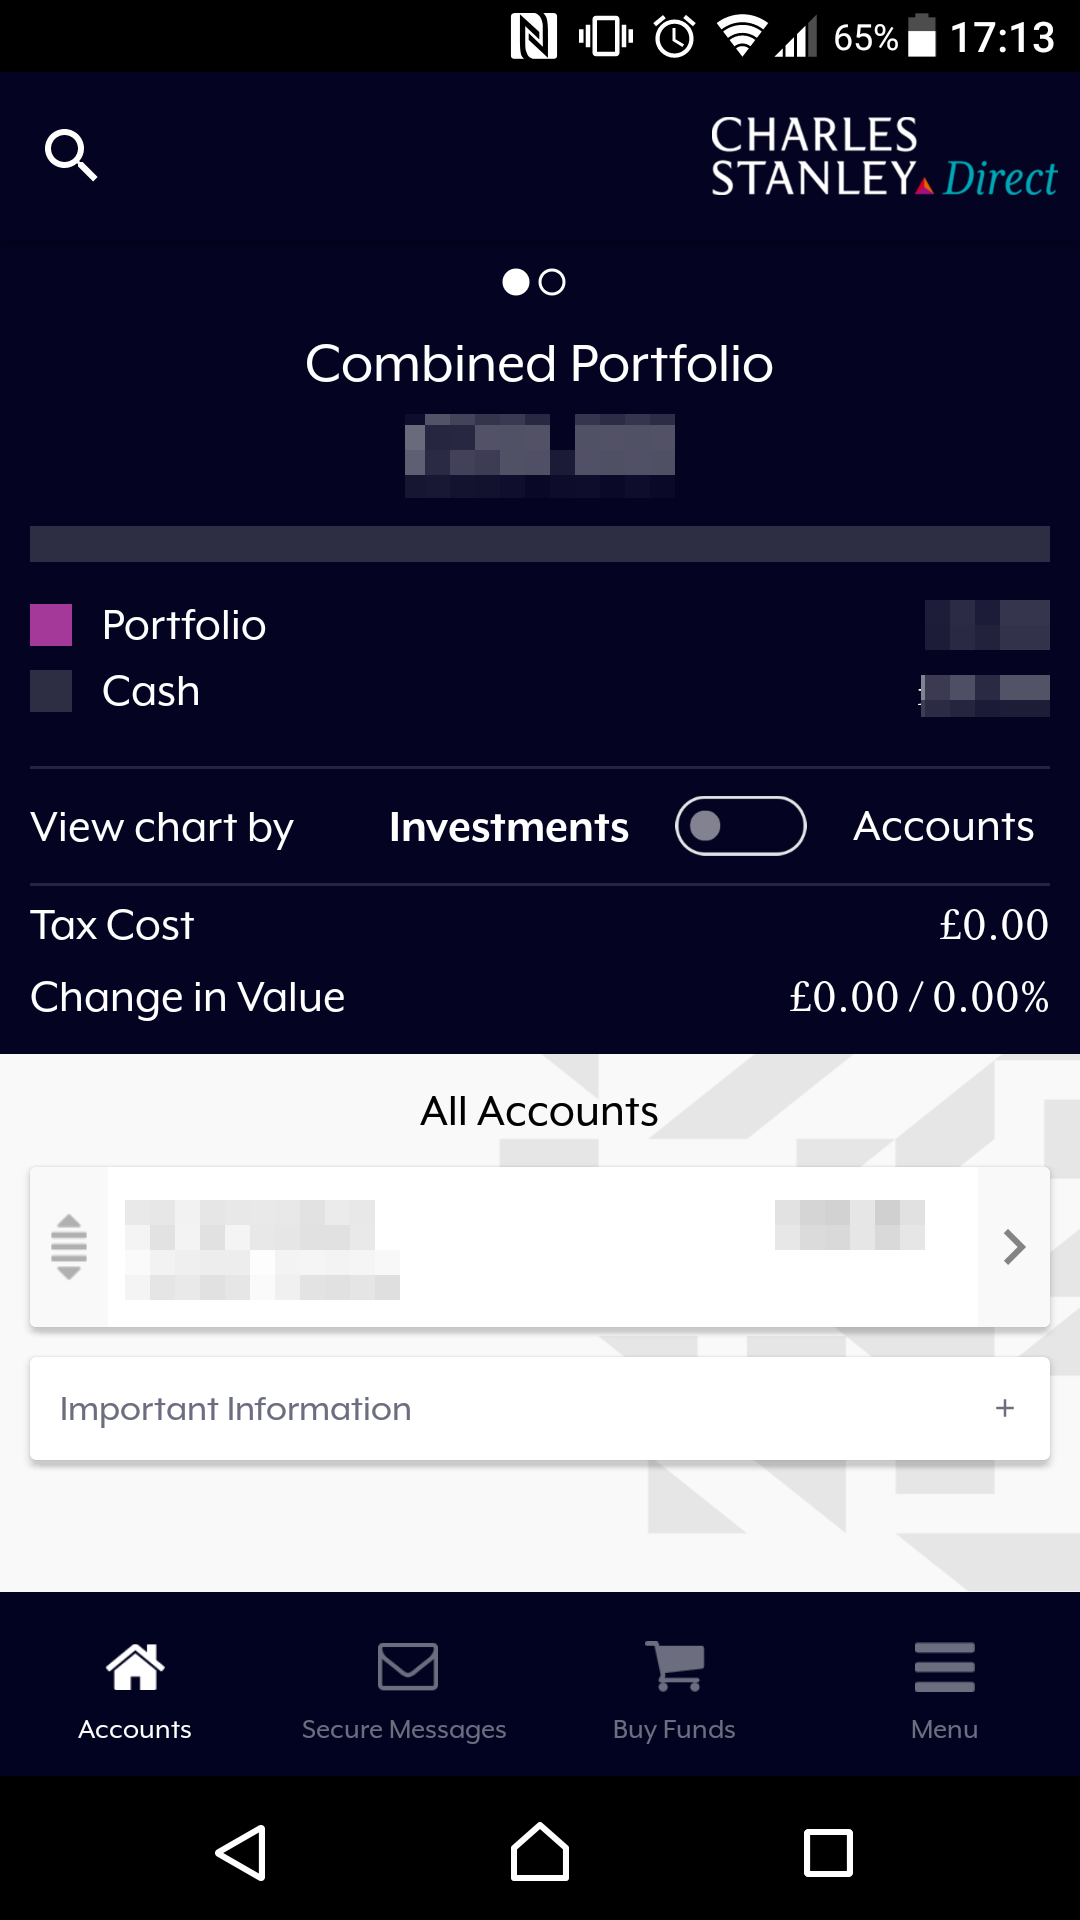 Charles Stanley Direct review - Mobile trading platform